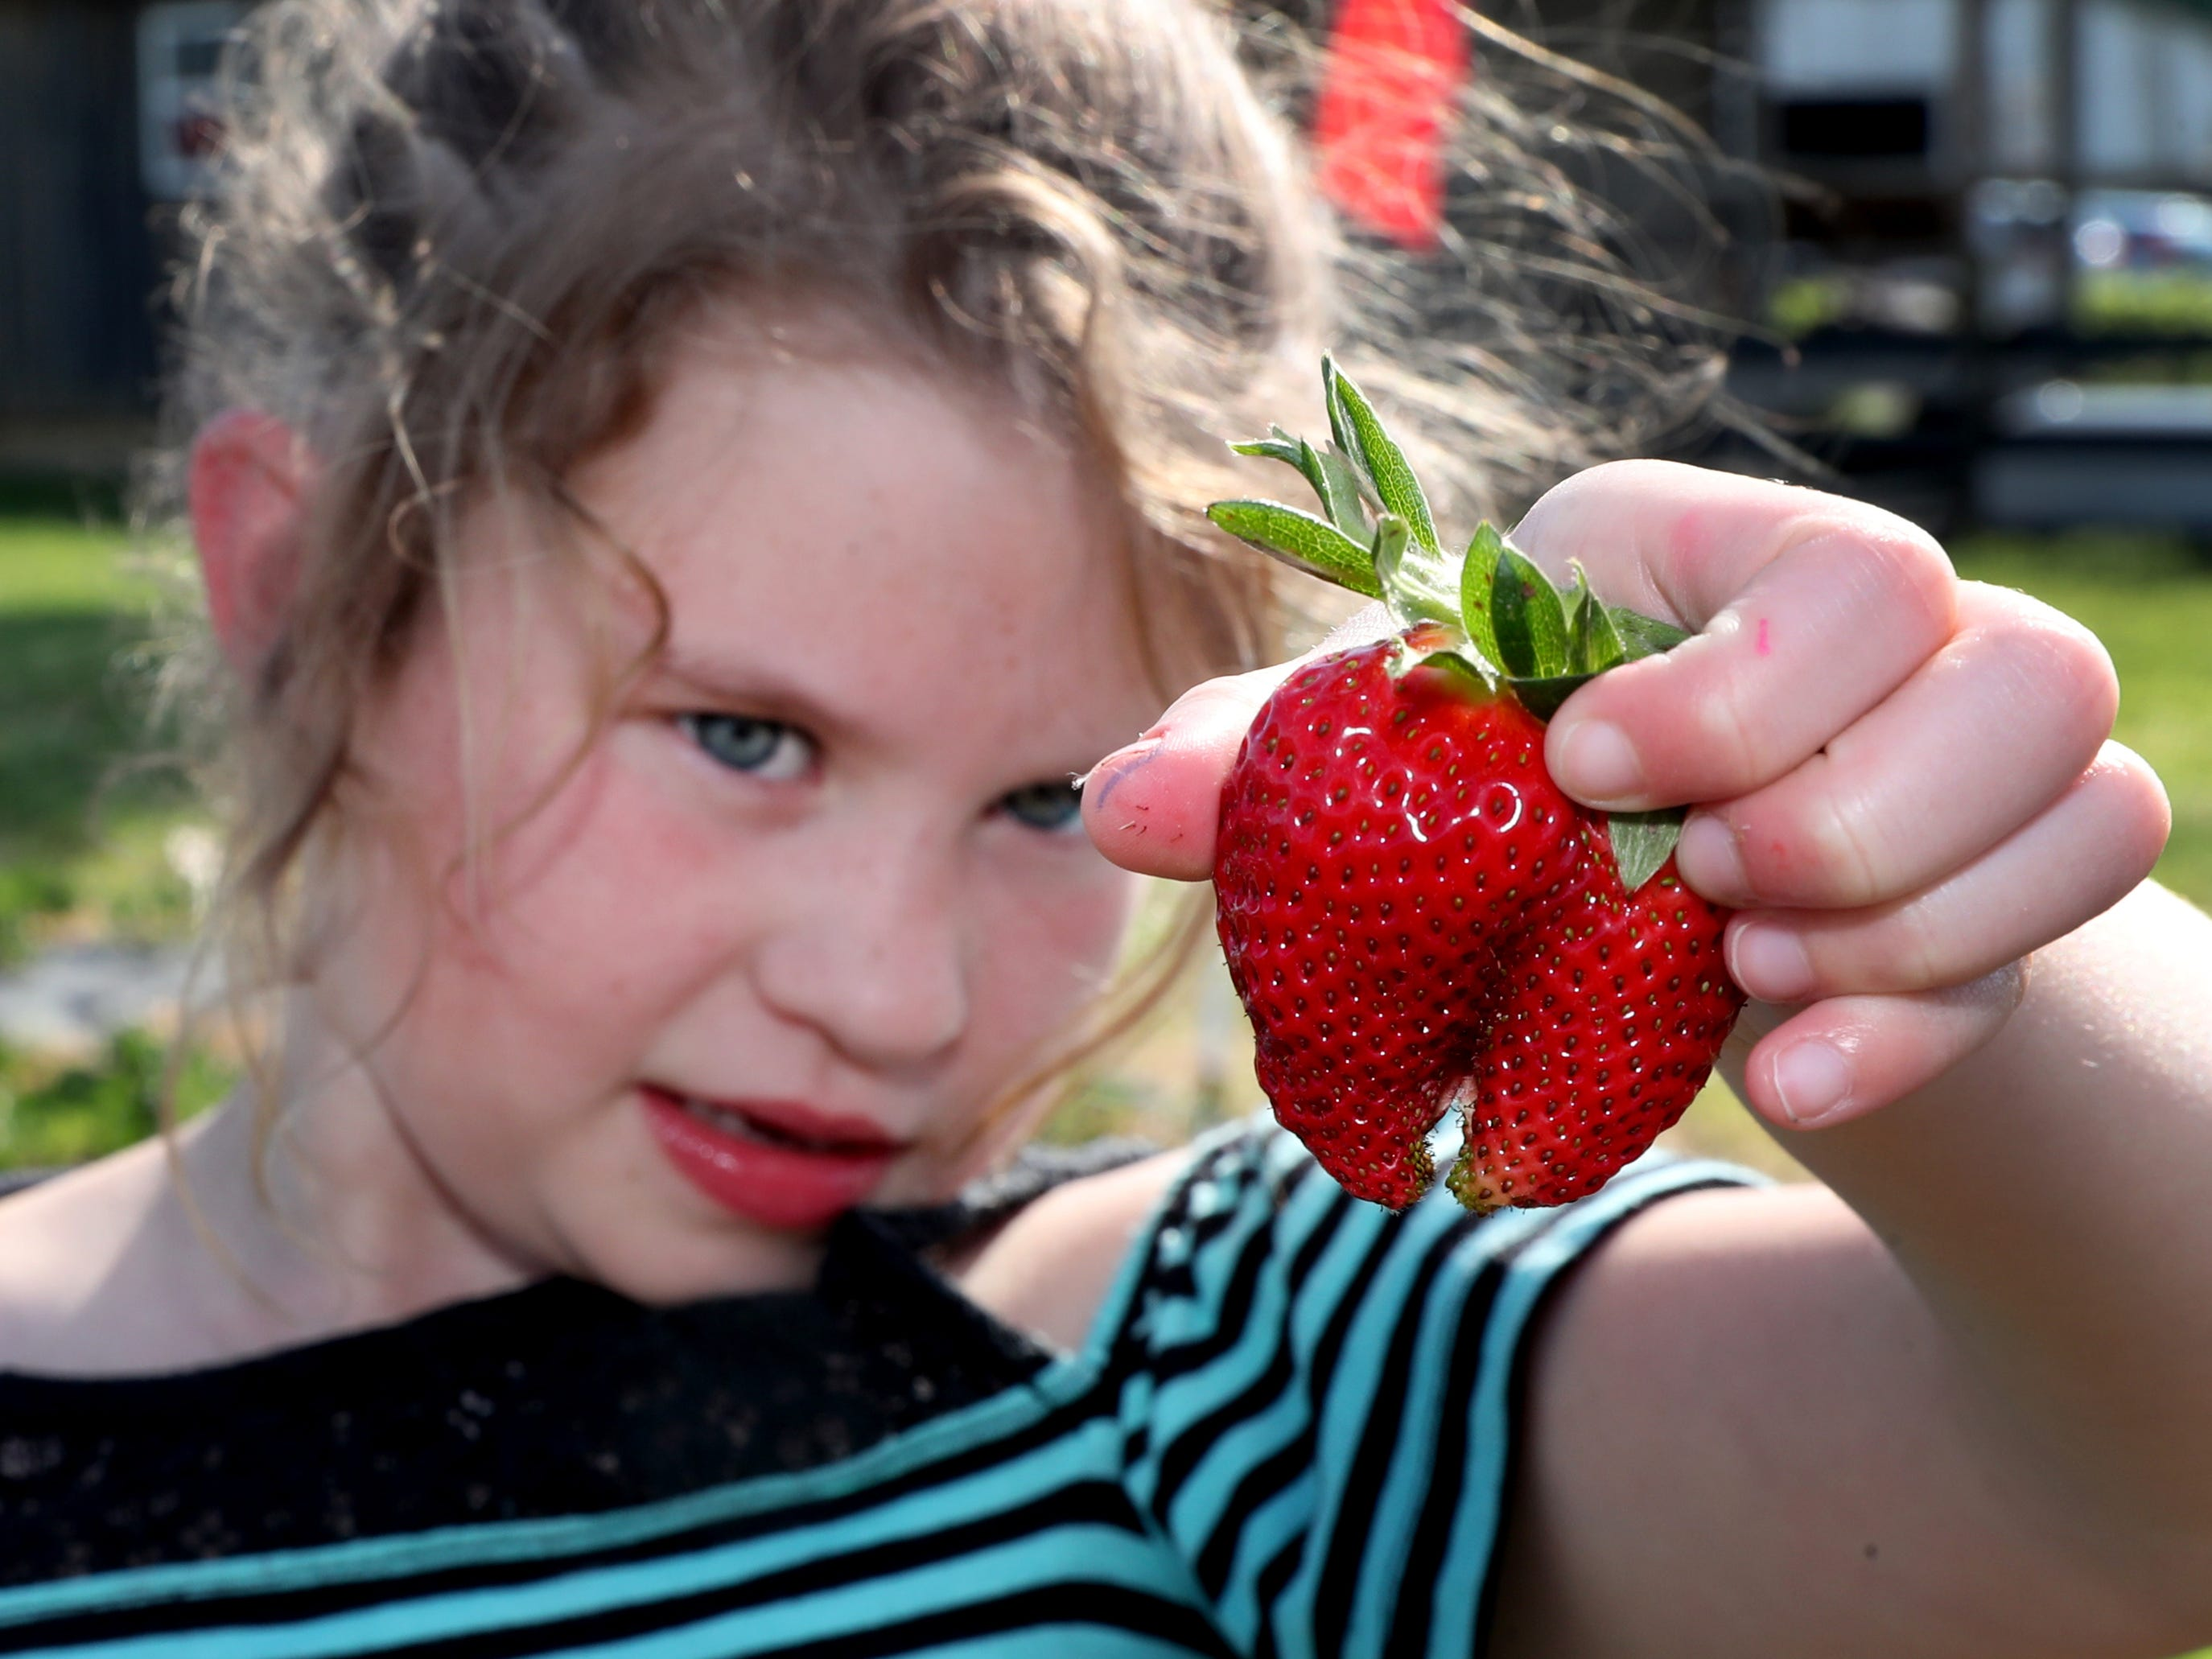 Ada Trotter, 7, shows off a double strawberry she pick at the Batey Farms strawberry patch off of Baker Road on Wednesday April 24, 2019, in Murfreesboro.